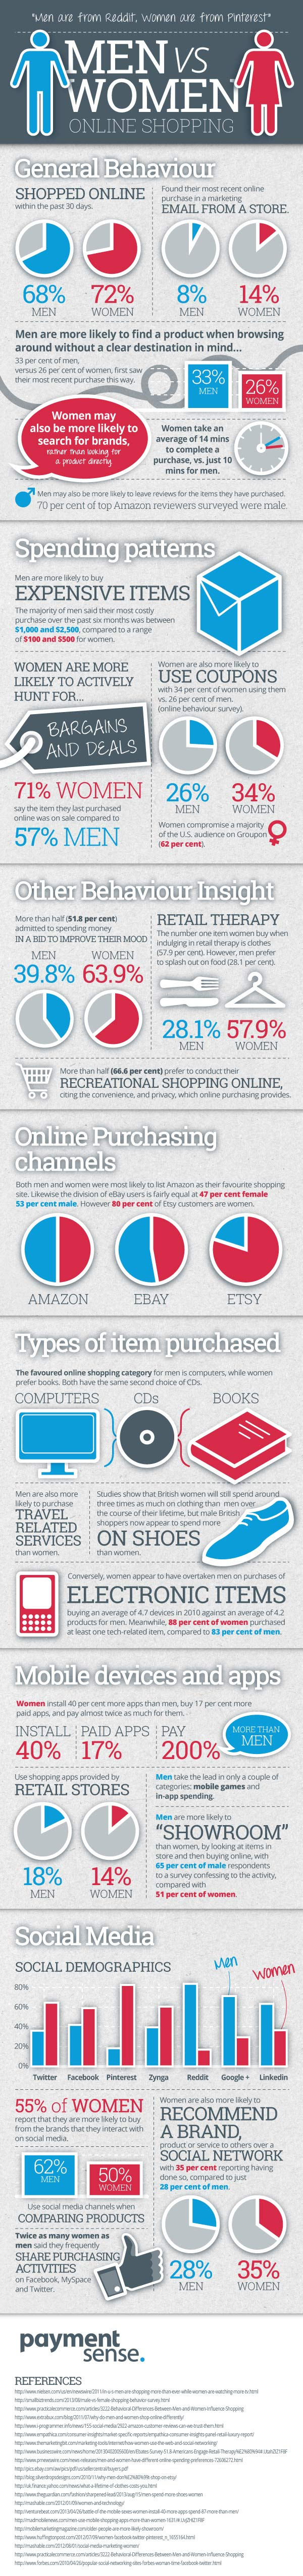 Do men and women shop differently online - infographic